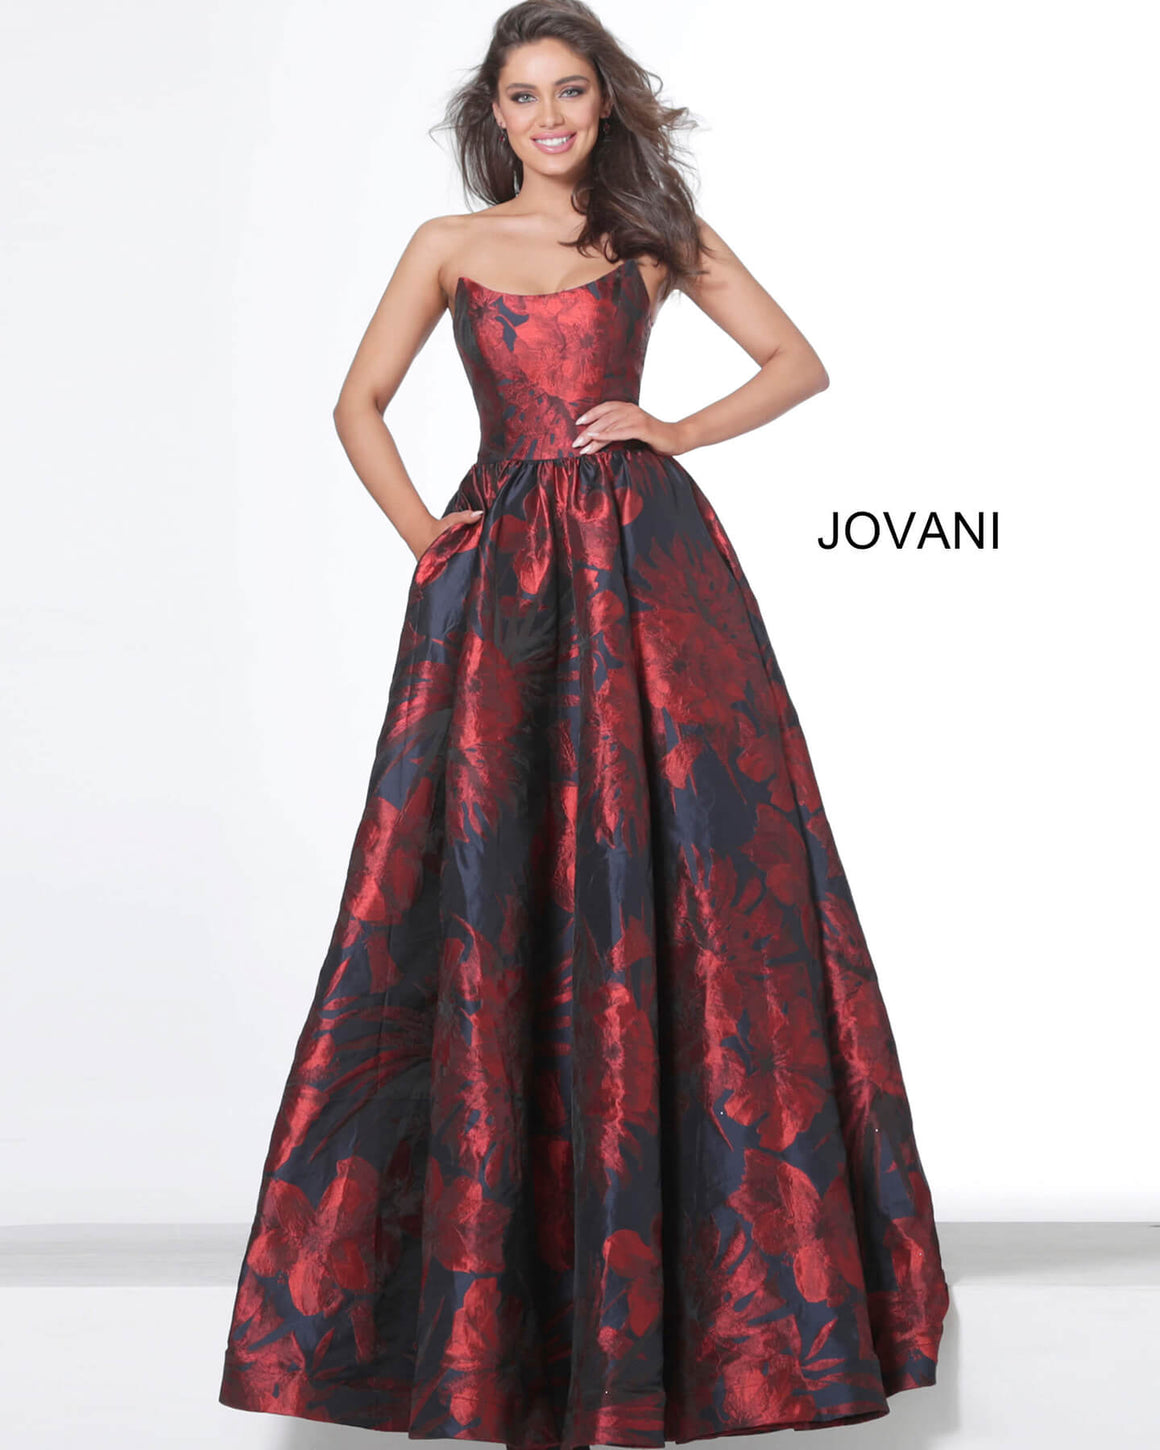 Jovani 03931 Navy Red Floral Strapless Evening Ballgown